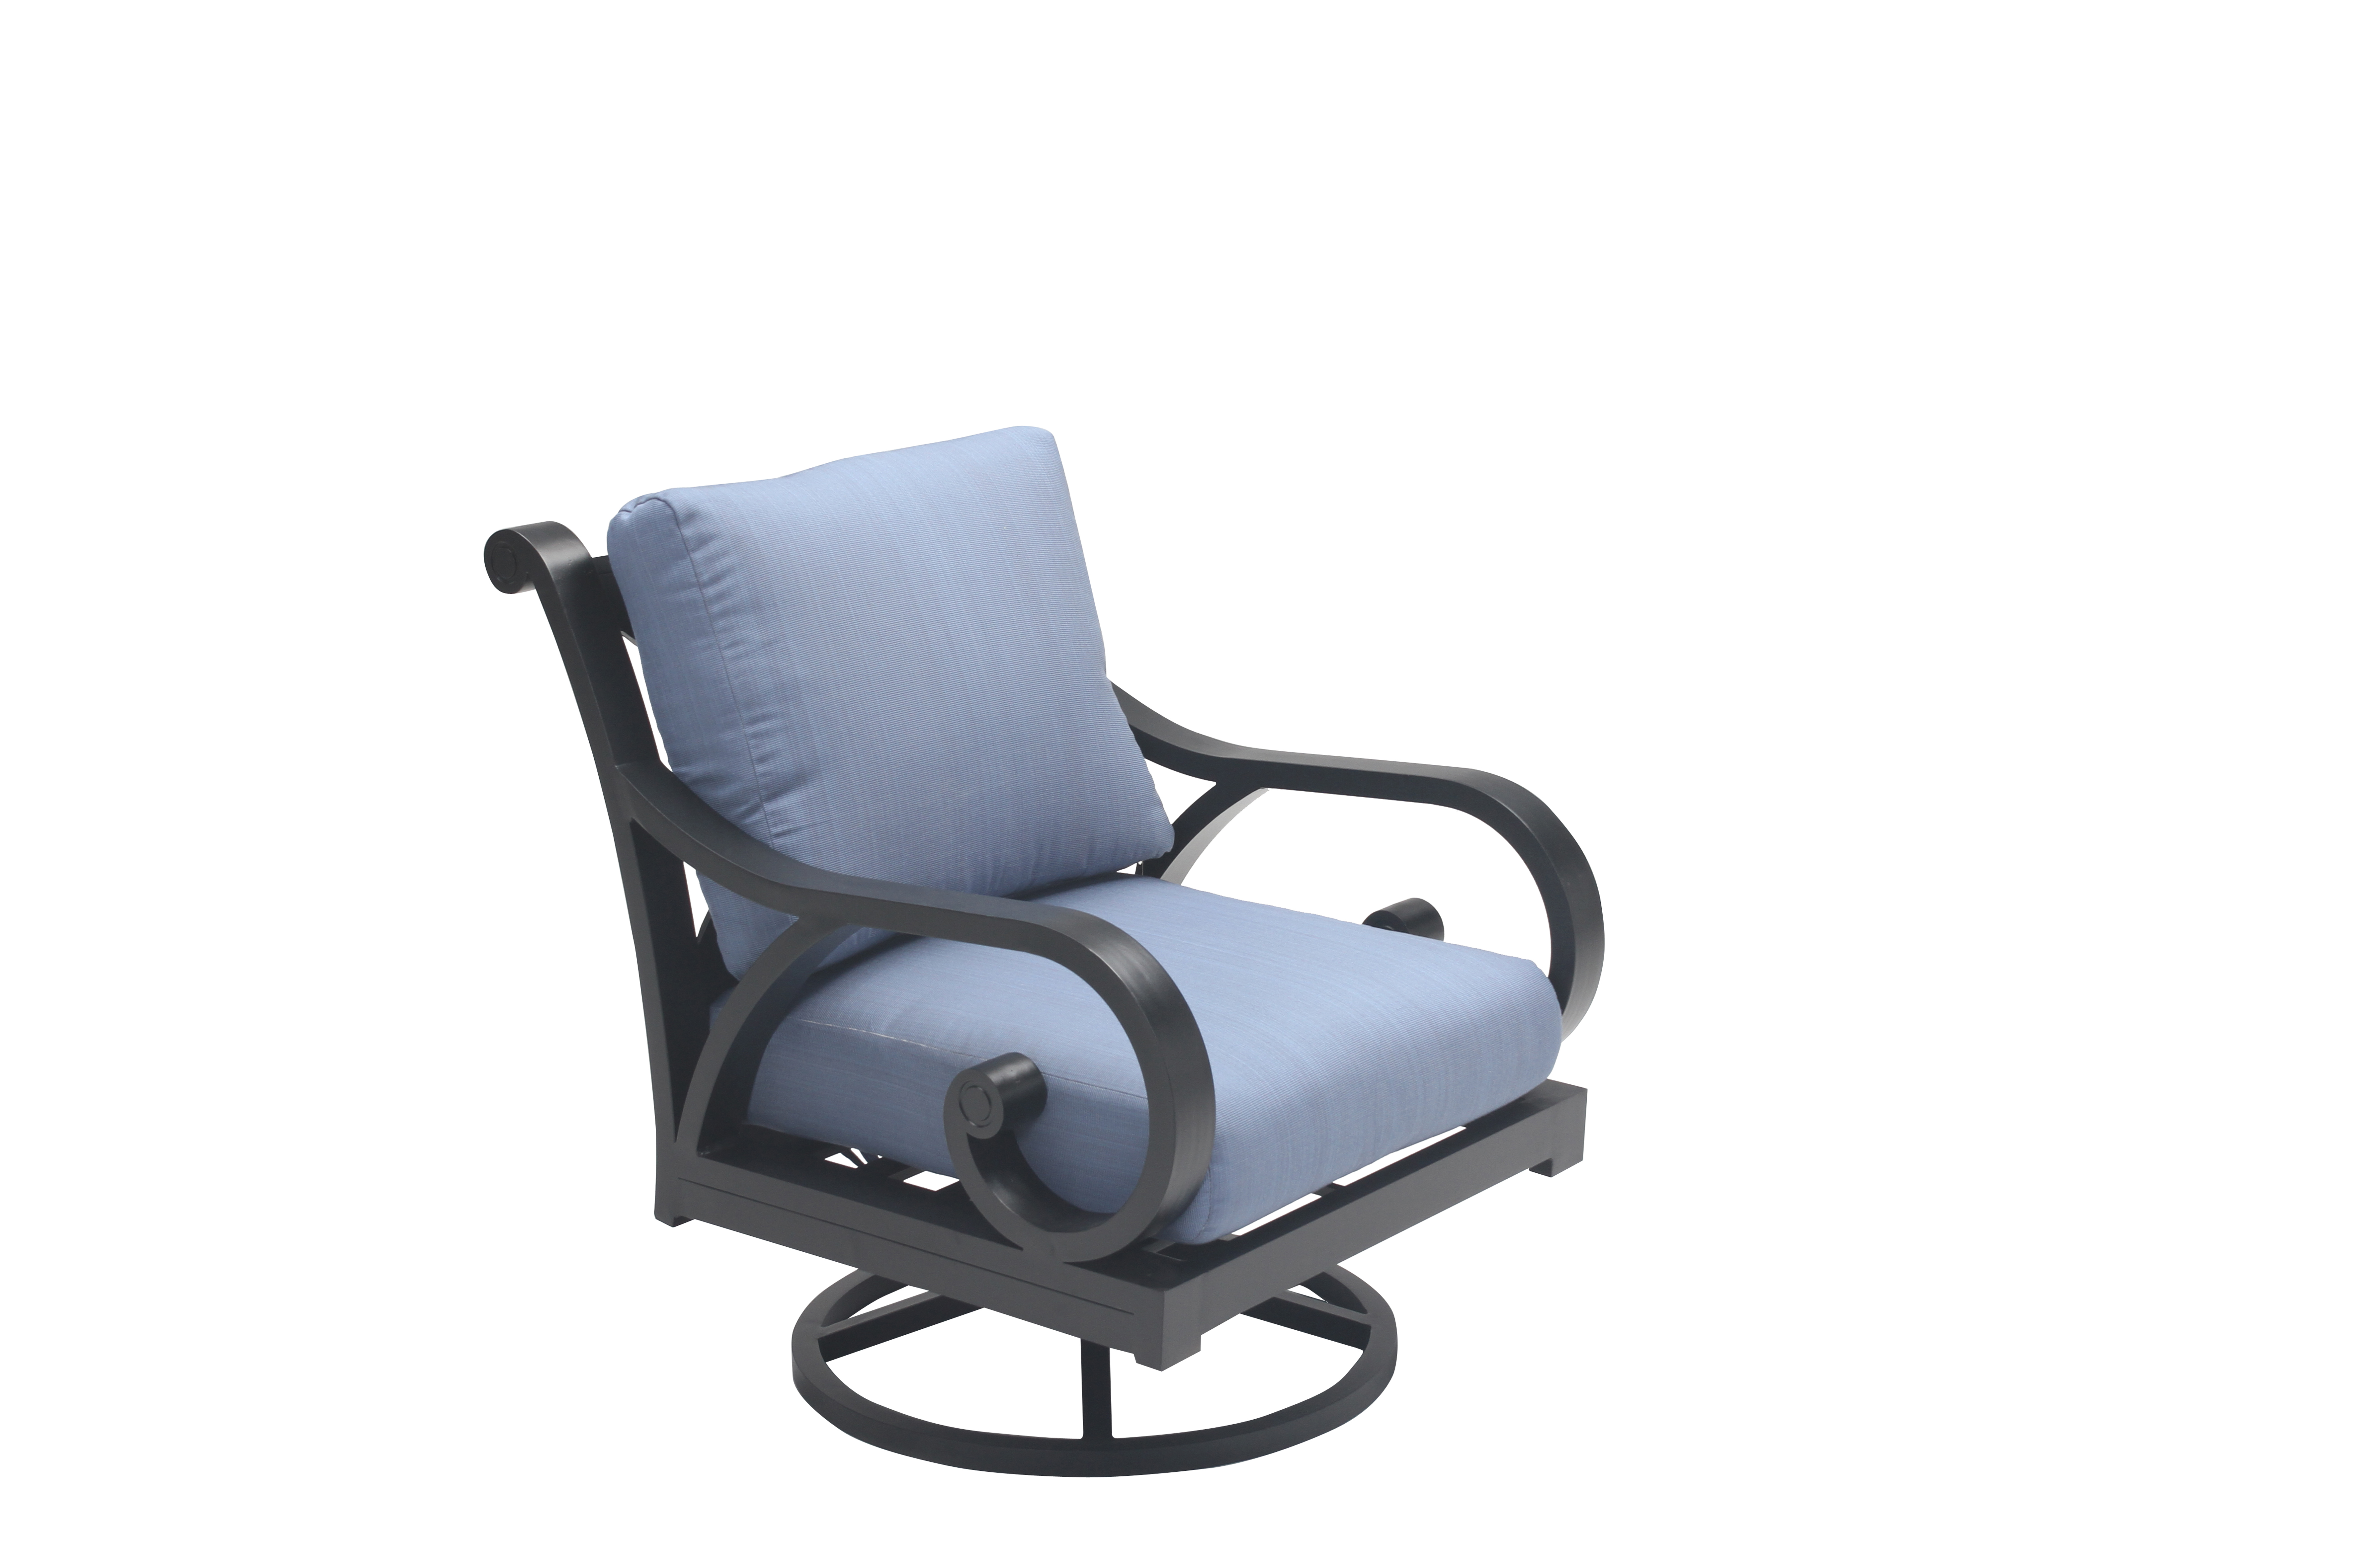 Surprising Athens Swivel Club Chair With Cushion Protege Casual Inc Alphanode Cool Chair Designs And Ideas Alphanodeonline